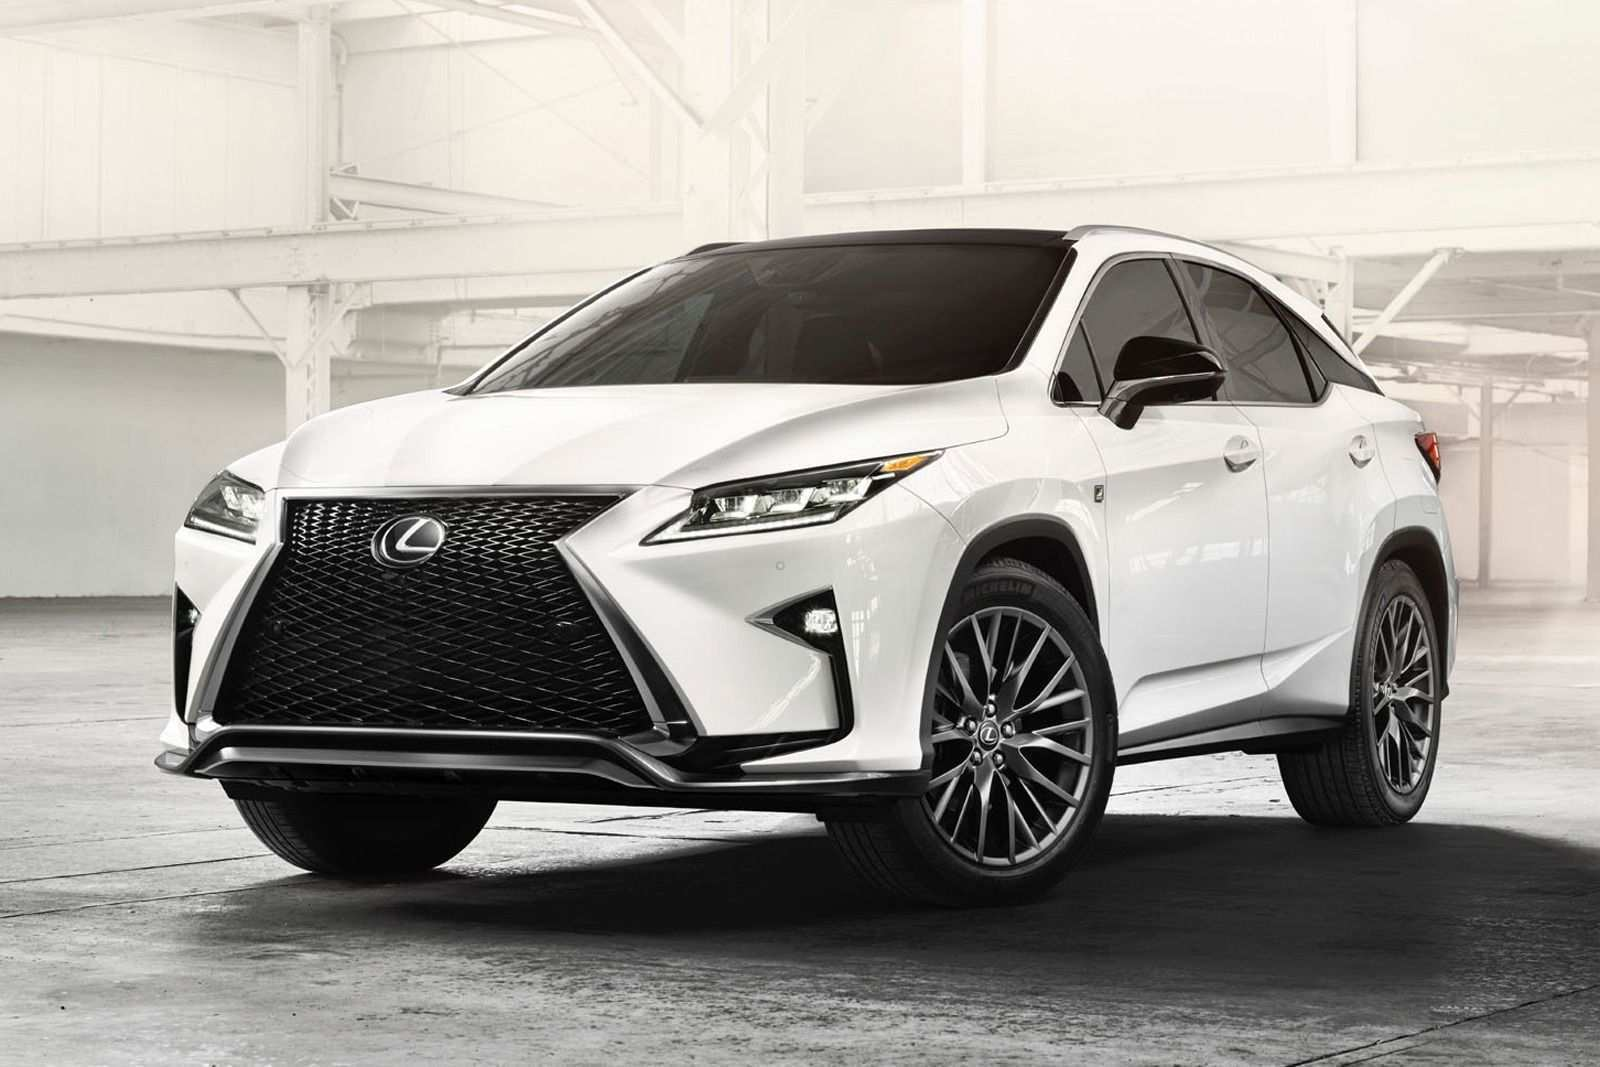 34 Best Review 2020 Lexus 350 Pricing with 2020 Lexus 350